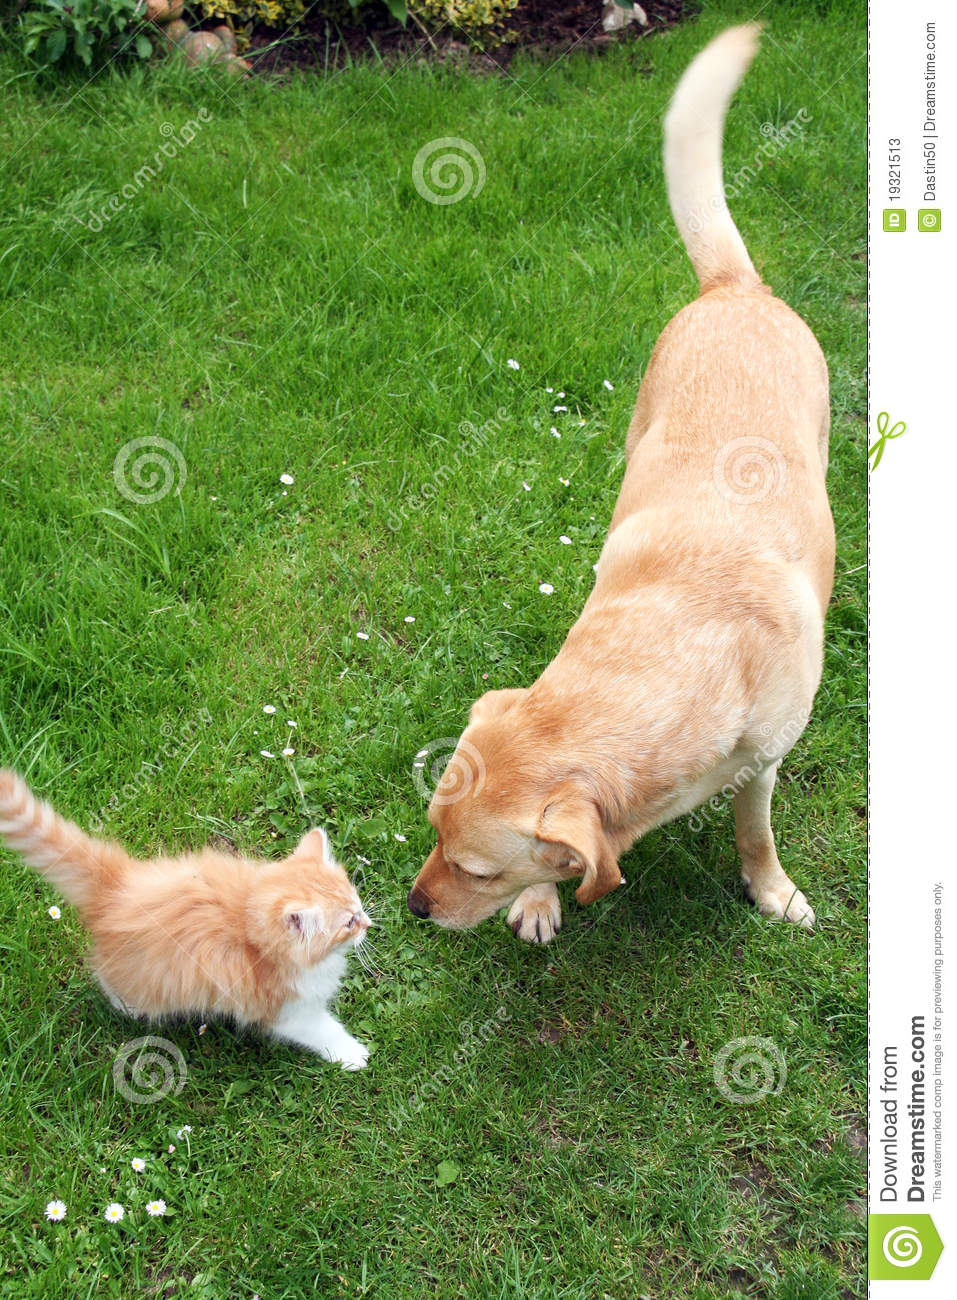 Dog and cat playing together - YouTube |Playing Cats And Dogs